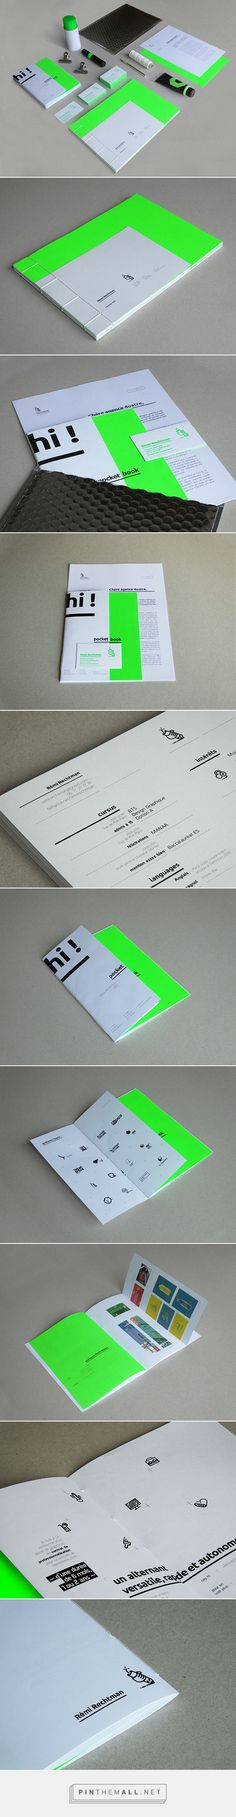 Self promotion - identity on Behance - created via https://pinthemall.net